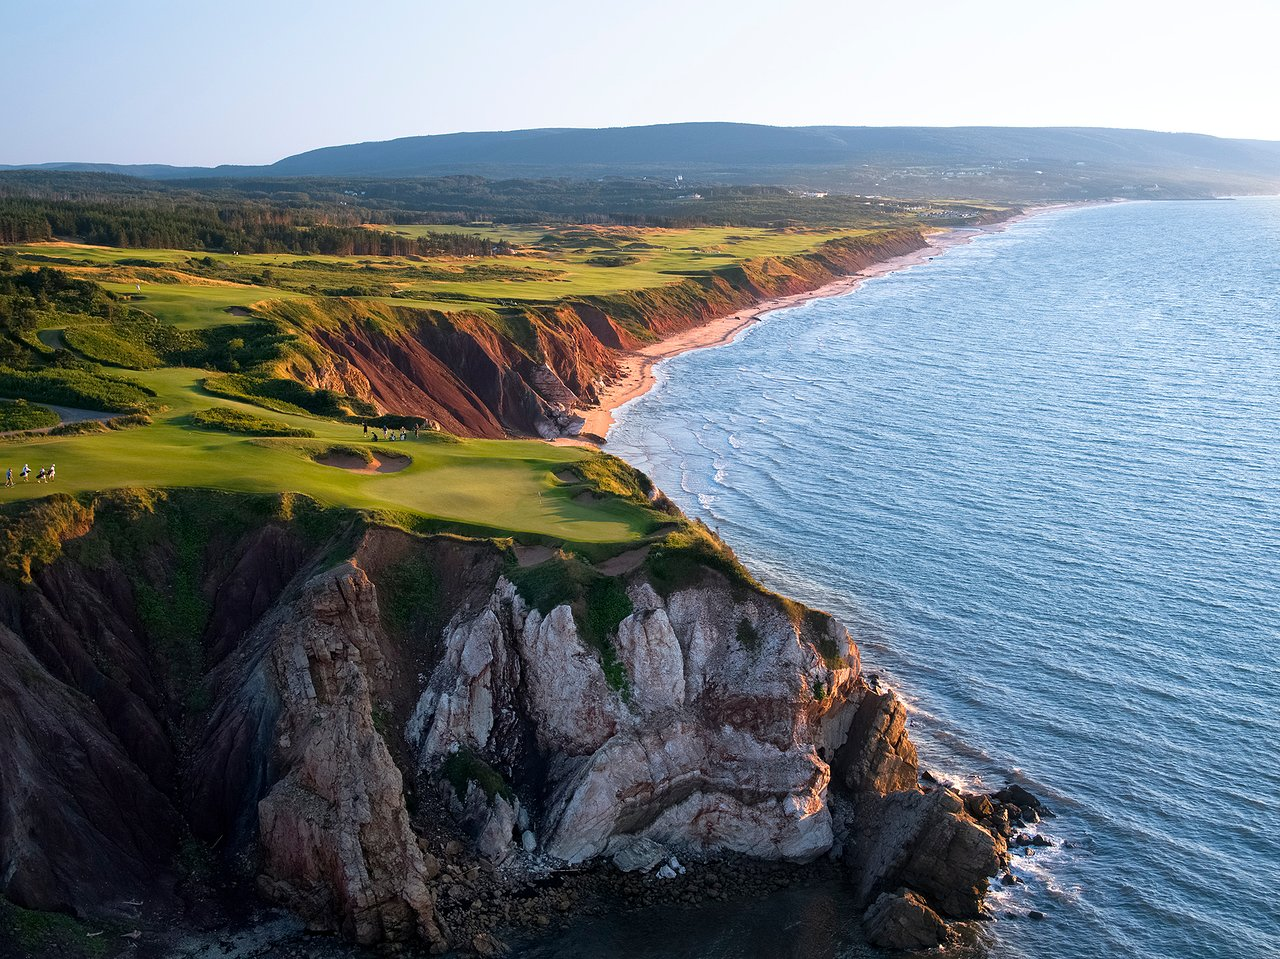 Cabot Links Resort - UPDATED 2019 Prices, Reviews & Photos